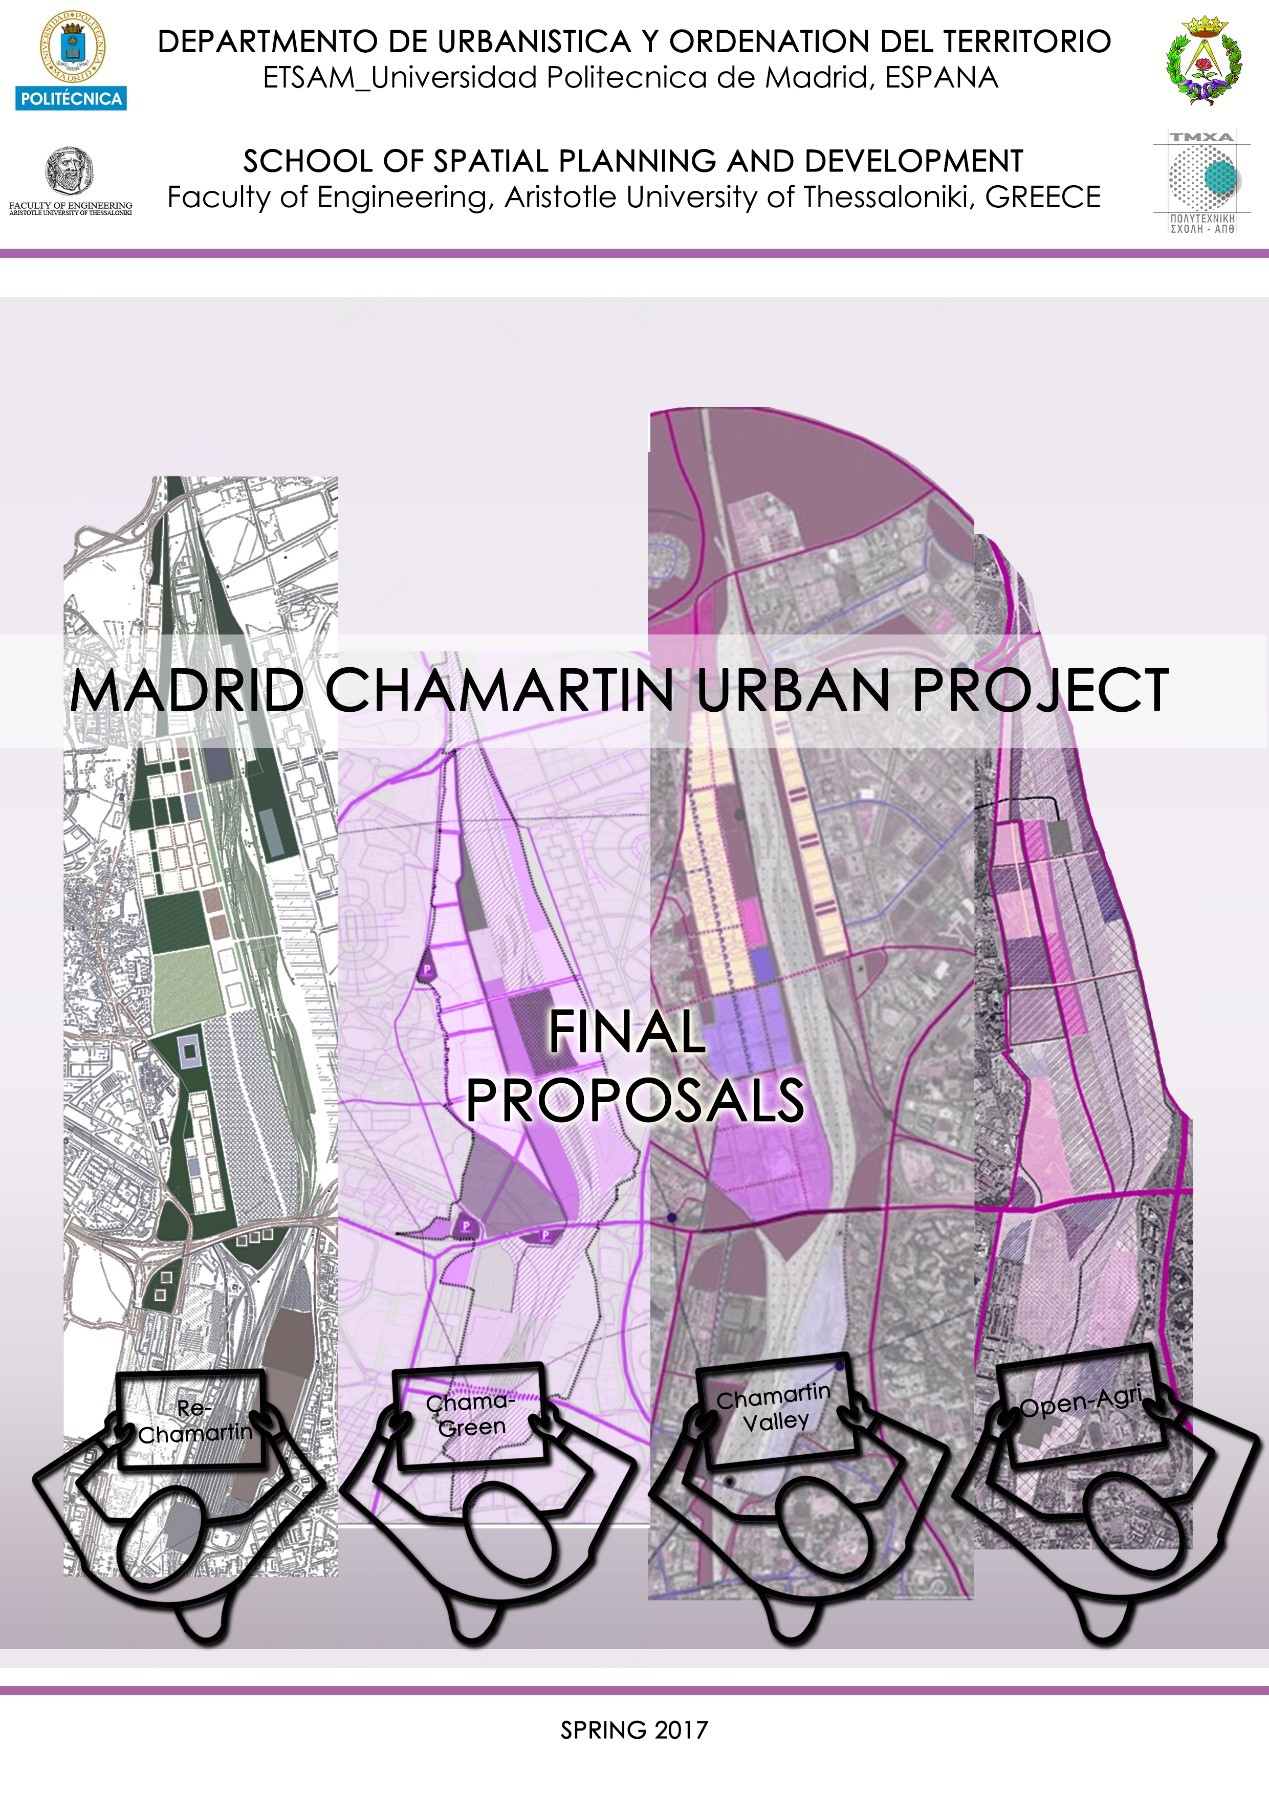 chamartin_final_proposals.jpg